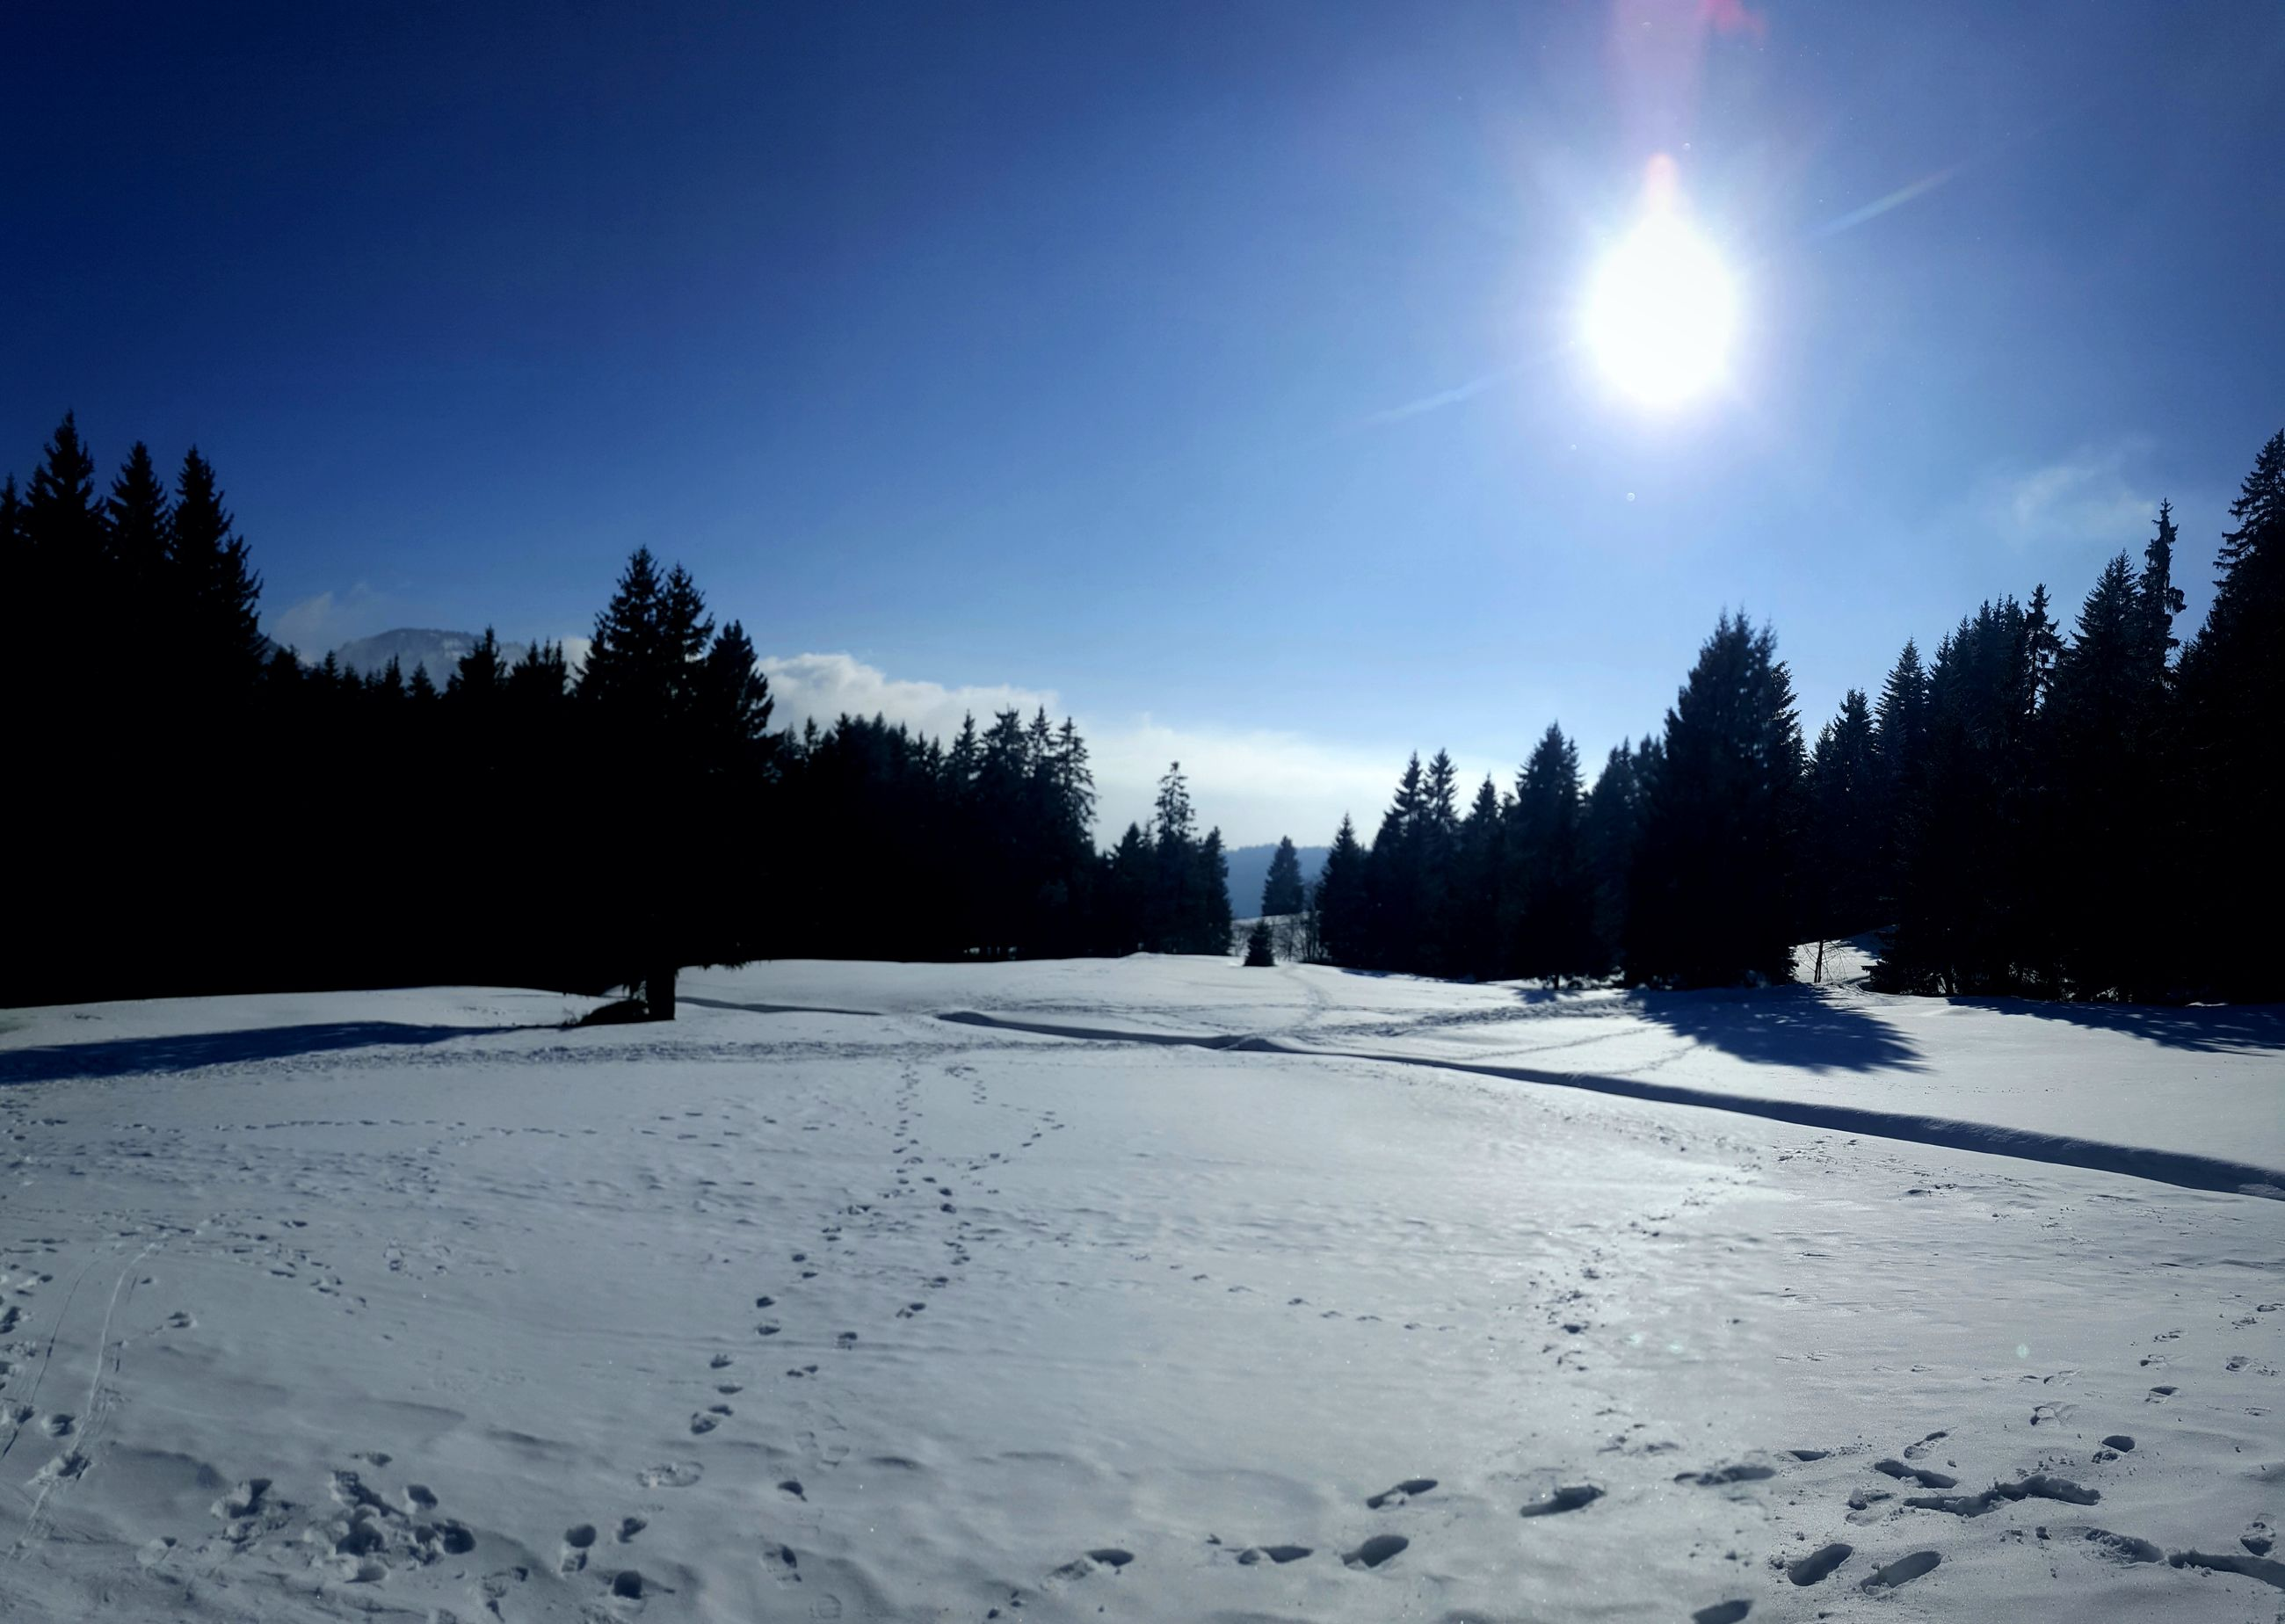 snow, winter, cold temperature, nature, tranquility, beauty in nature, scenics, tranquil scene, sun, sunlight, no people, tree, landscape, sky, outdoors, moon, clear sky, day